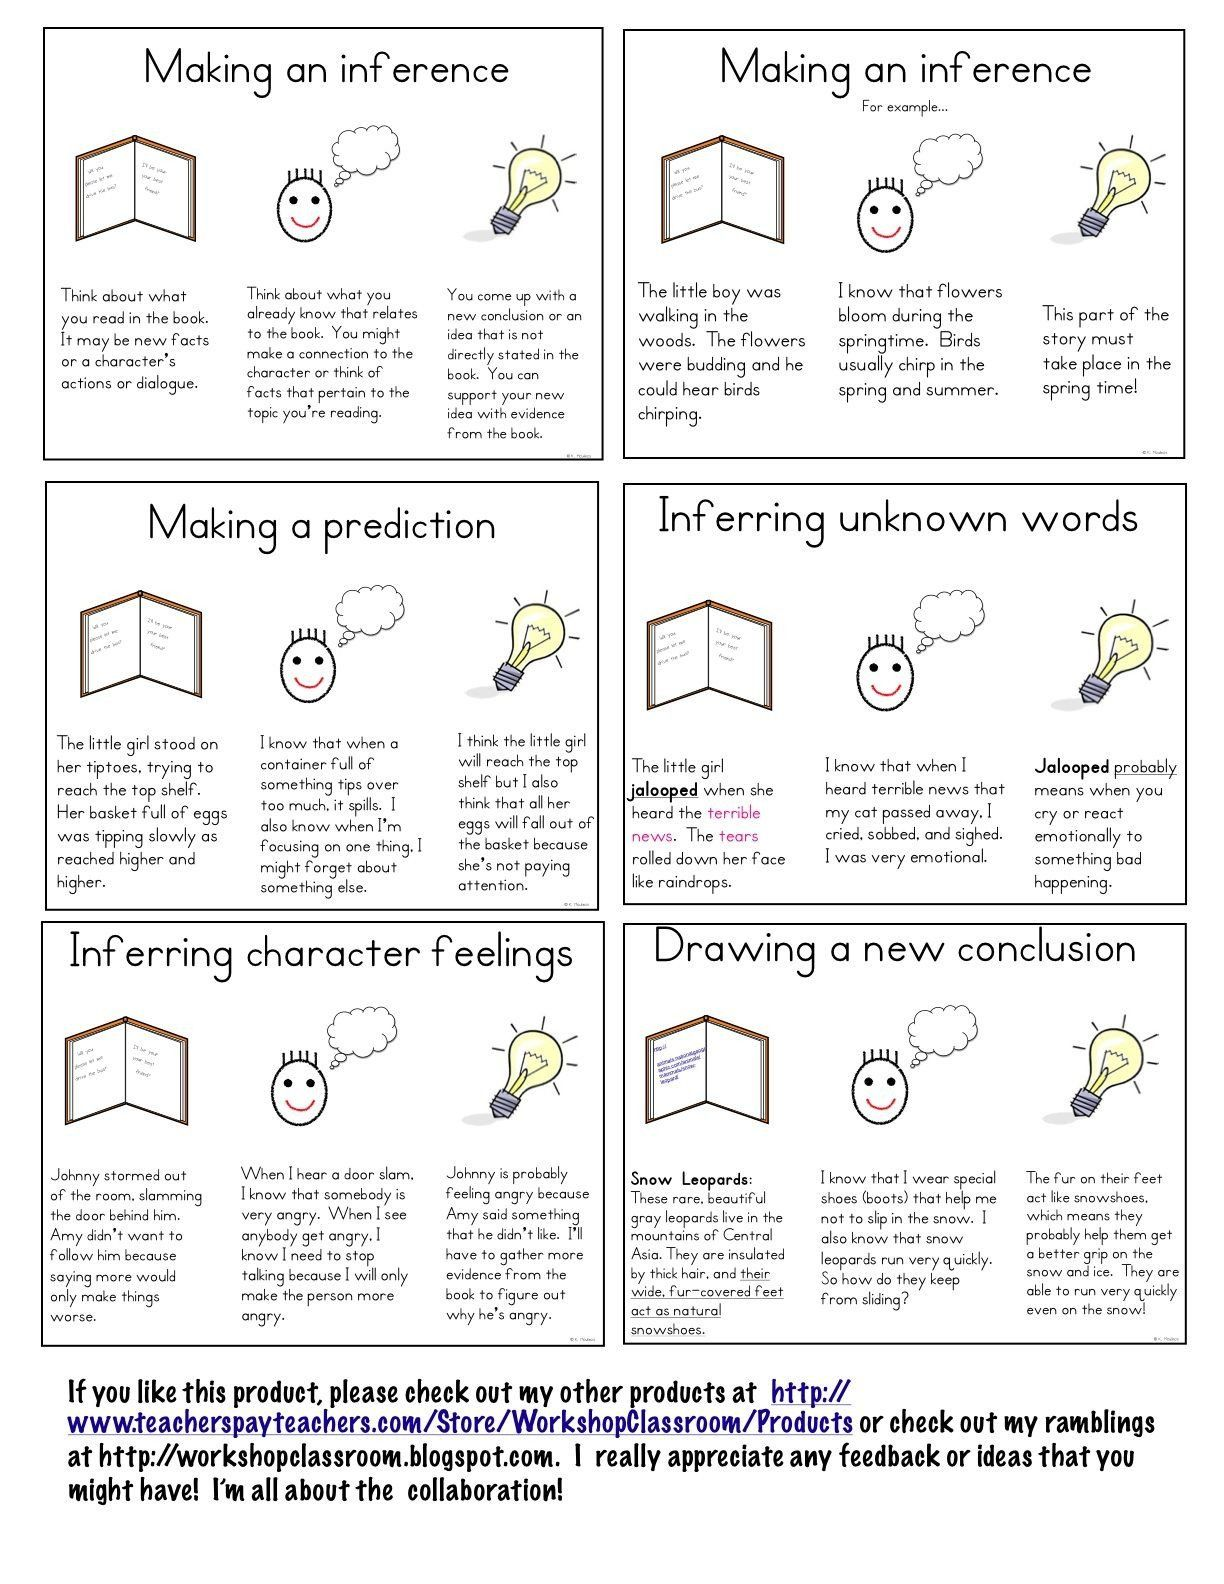 Drawing Conclusions Worksheets 2nd Grade Drawing Conclusion Worksheet Third  Grade   Inference task cards [ 1584 x 1224 Pixel ]